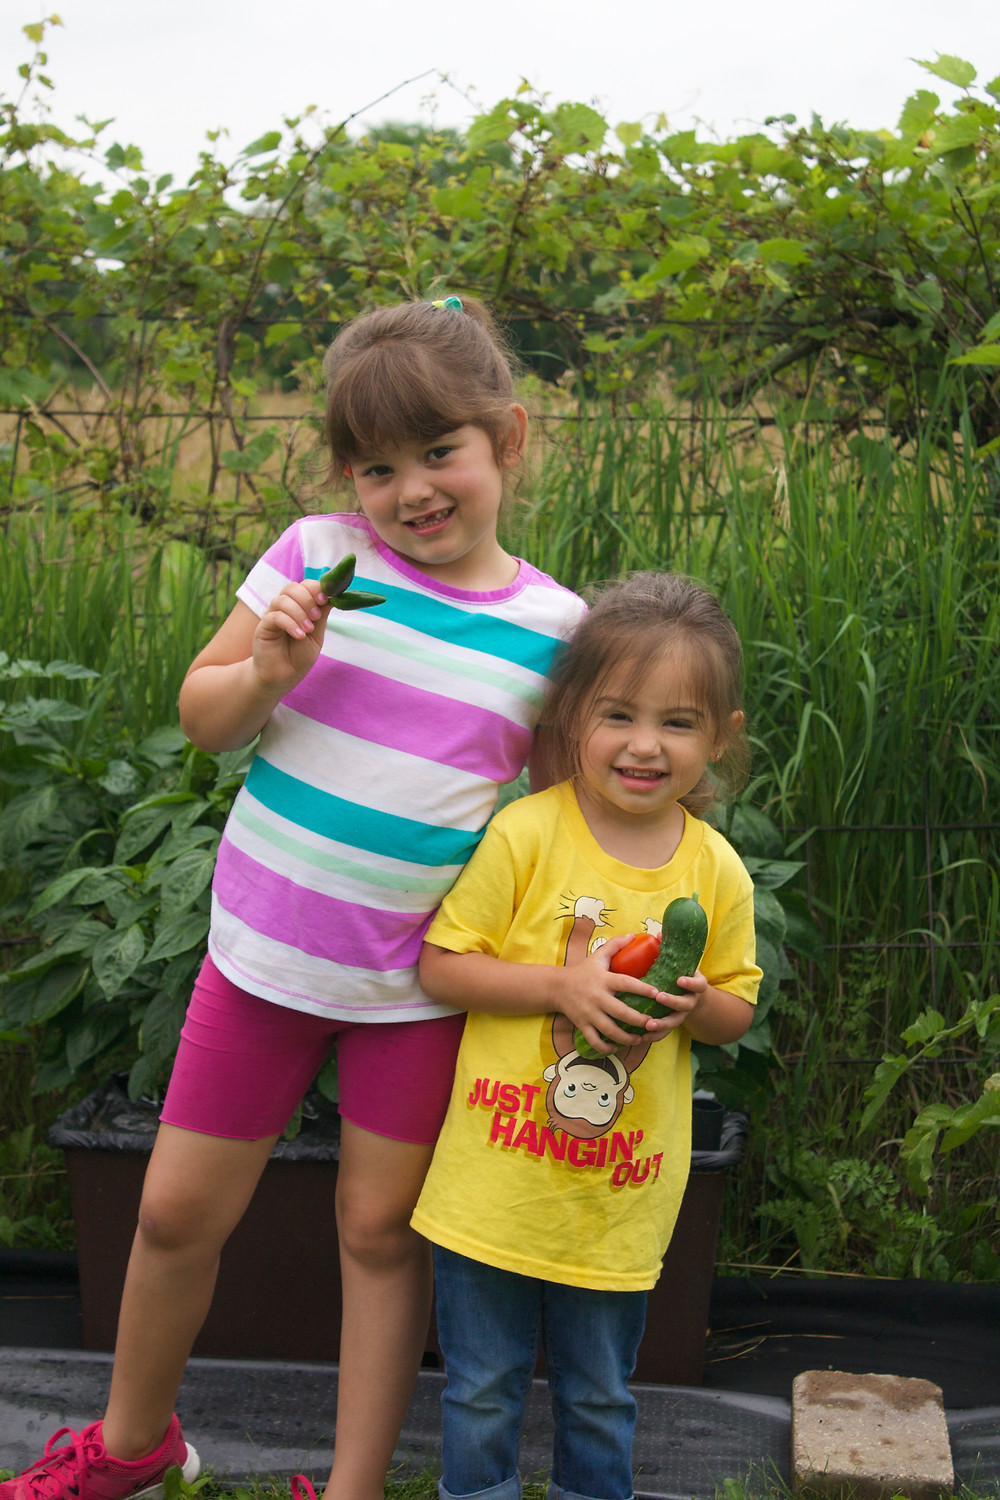 Having fun picking vegetables at Blue Sky Daycare home daycare